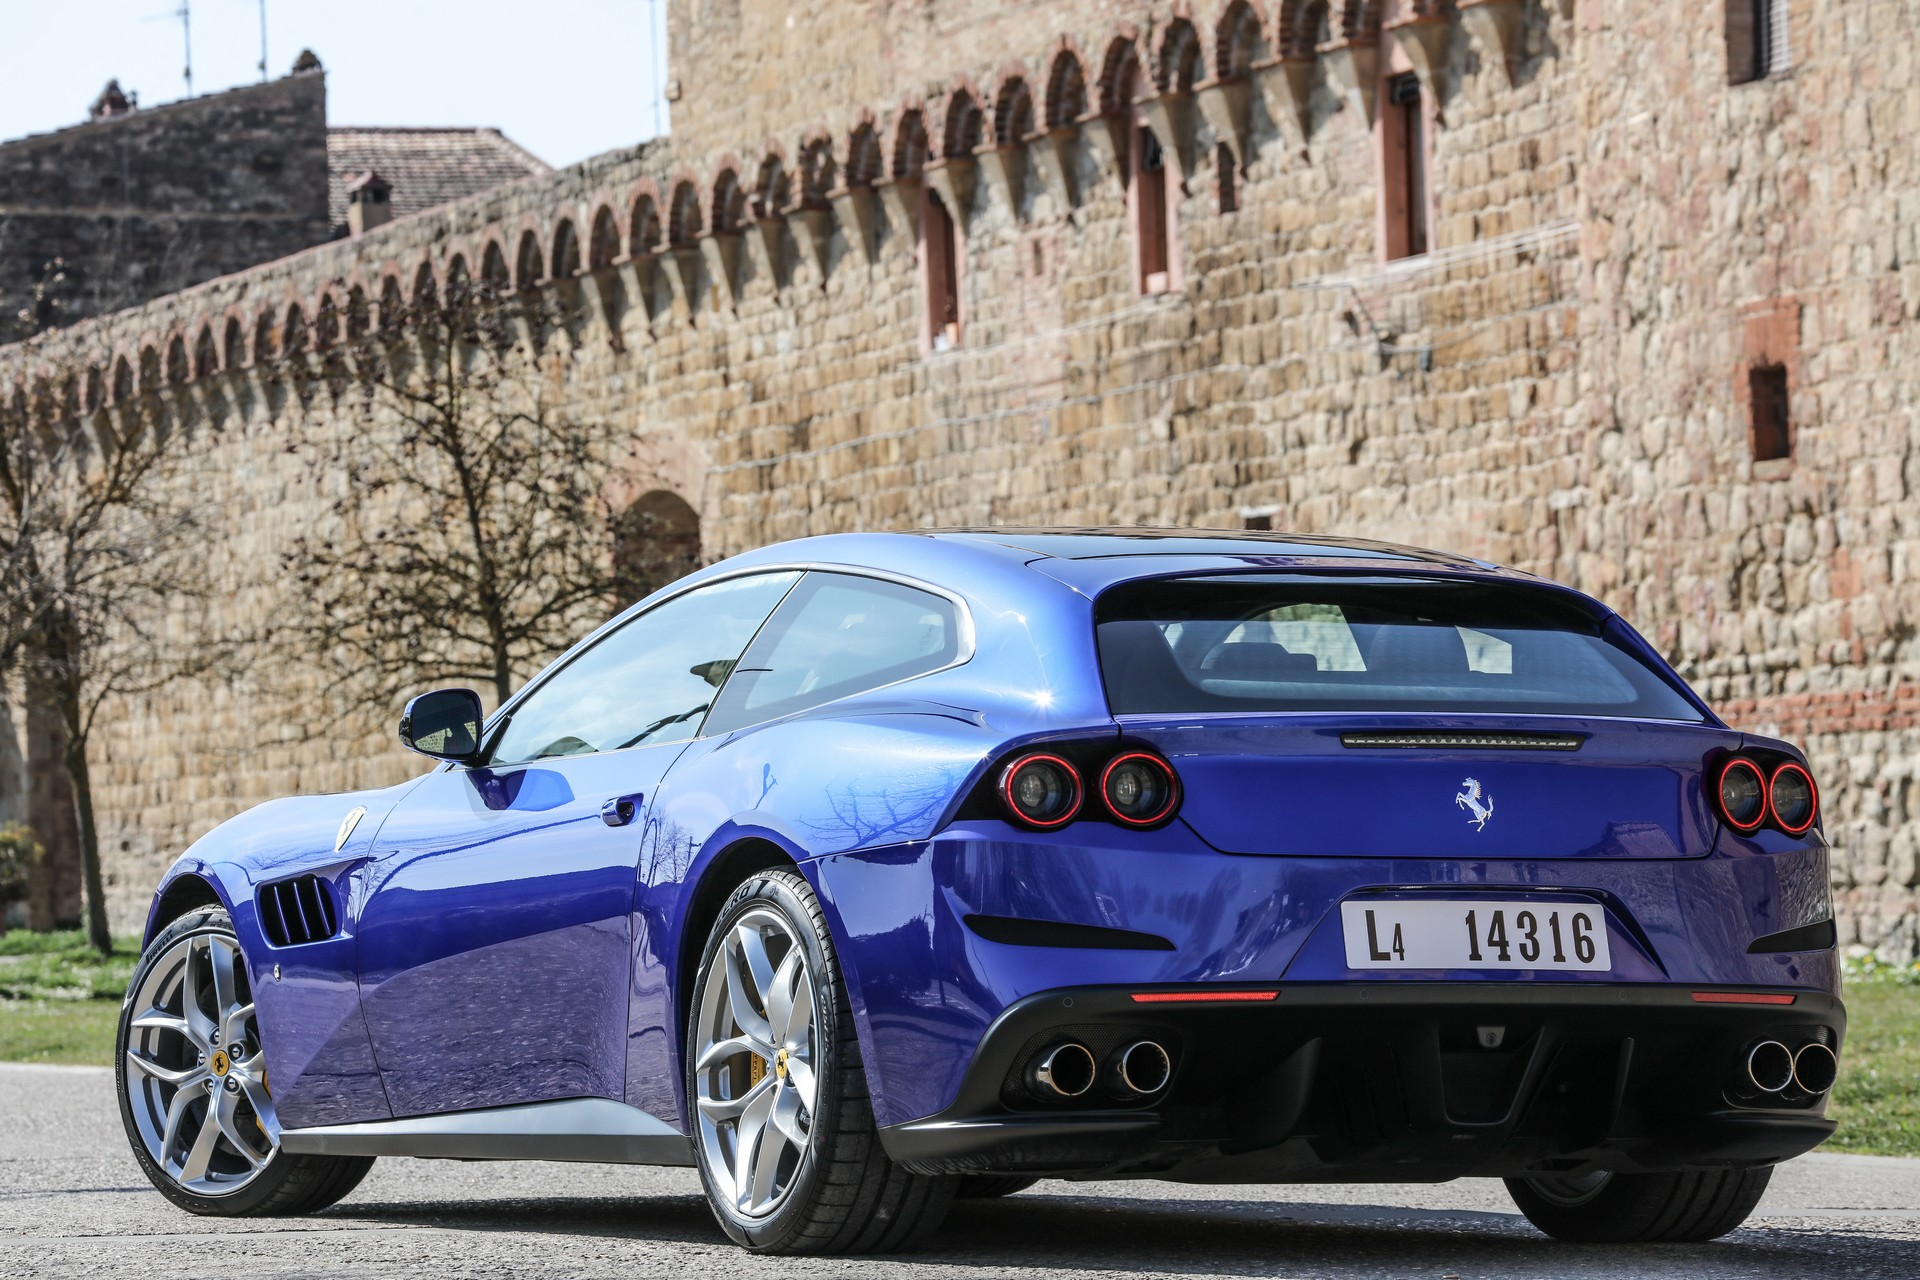 Ferrari Drops The Gtc4lusso And Gtc4lusso T From Its Range Carscoops